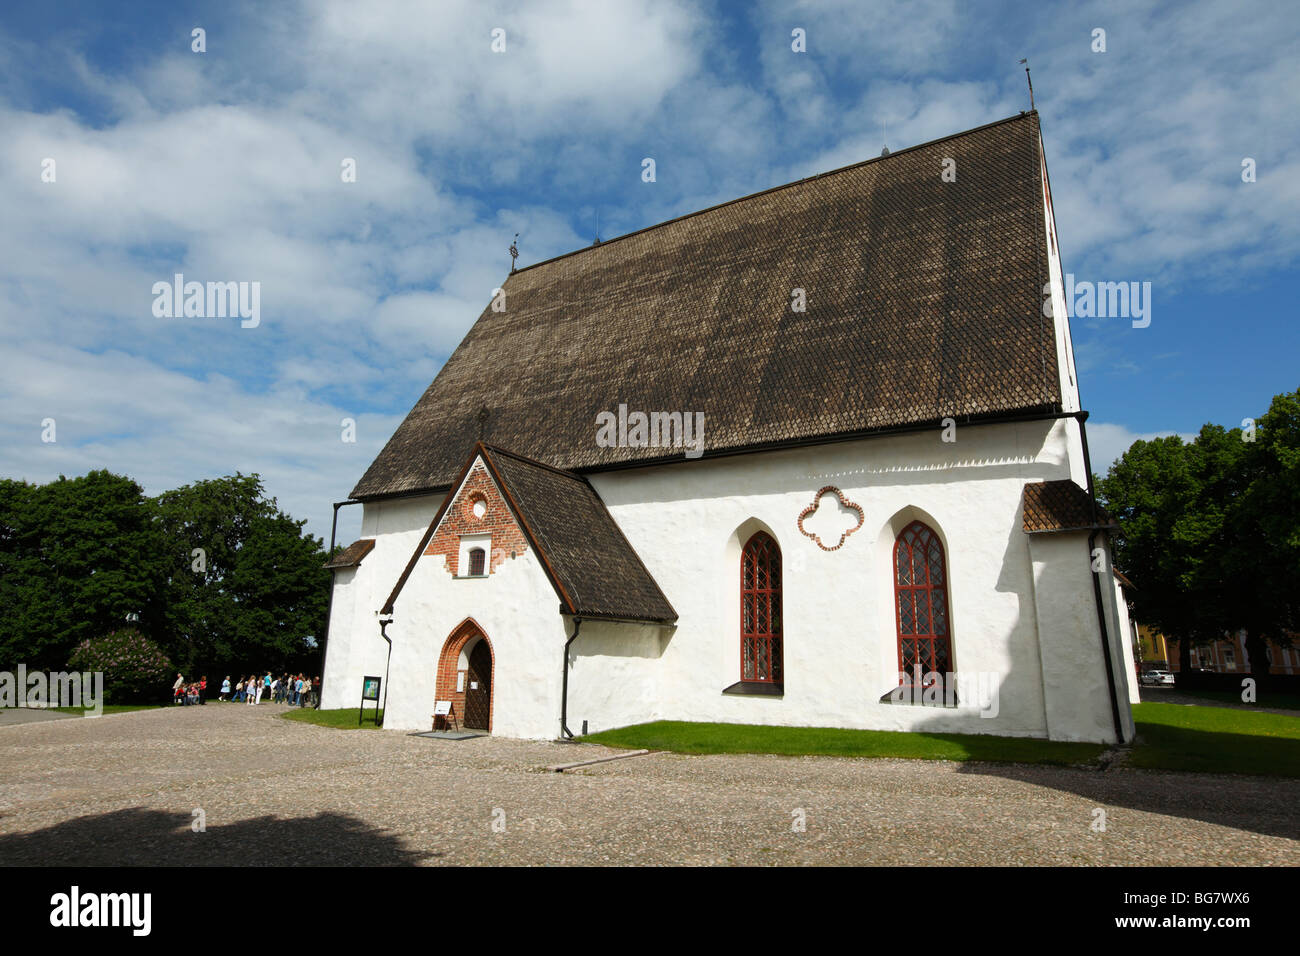 Finland, Southern Finland, Eastern Uusimaa, Porvoo, Historic Porvoo Cathedral - Stock Image